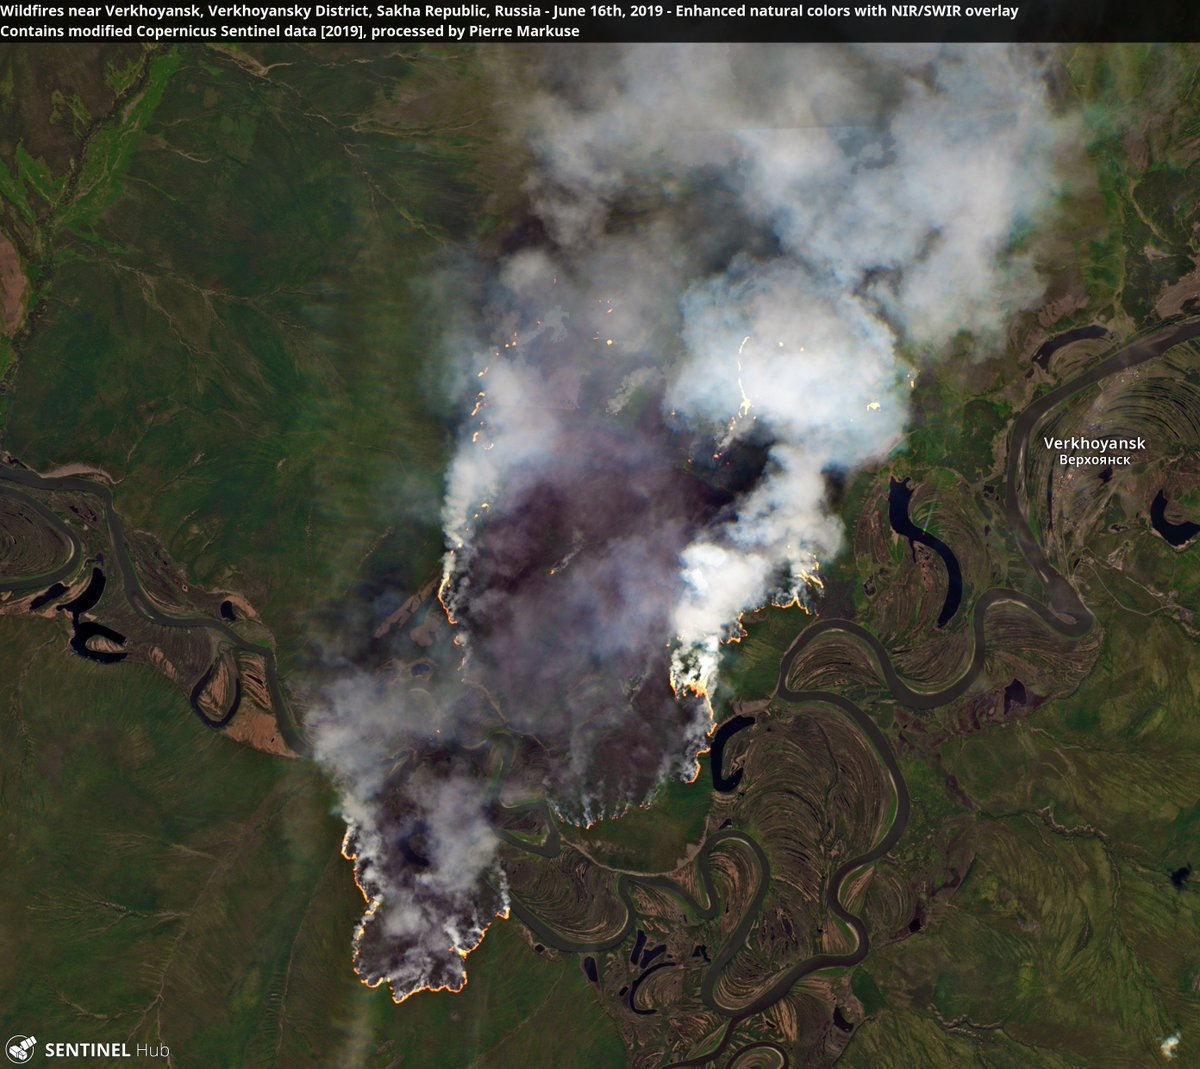 Wildfires near #Verkhoyansk, Verkhoyansky District, Sakha Republic, #Russia 16 June 2019. Copernicus/Pierre Markuse